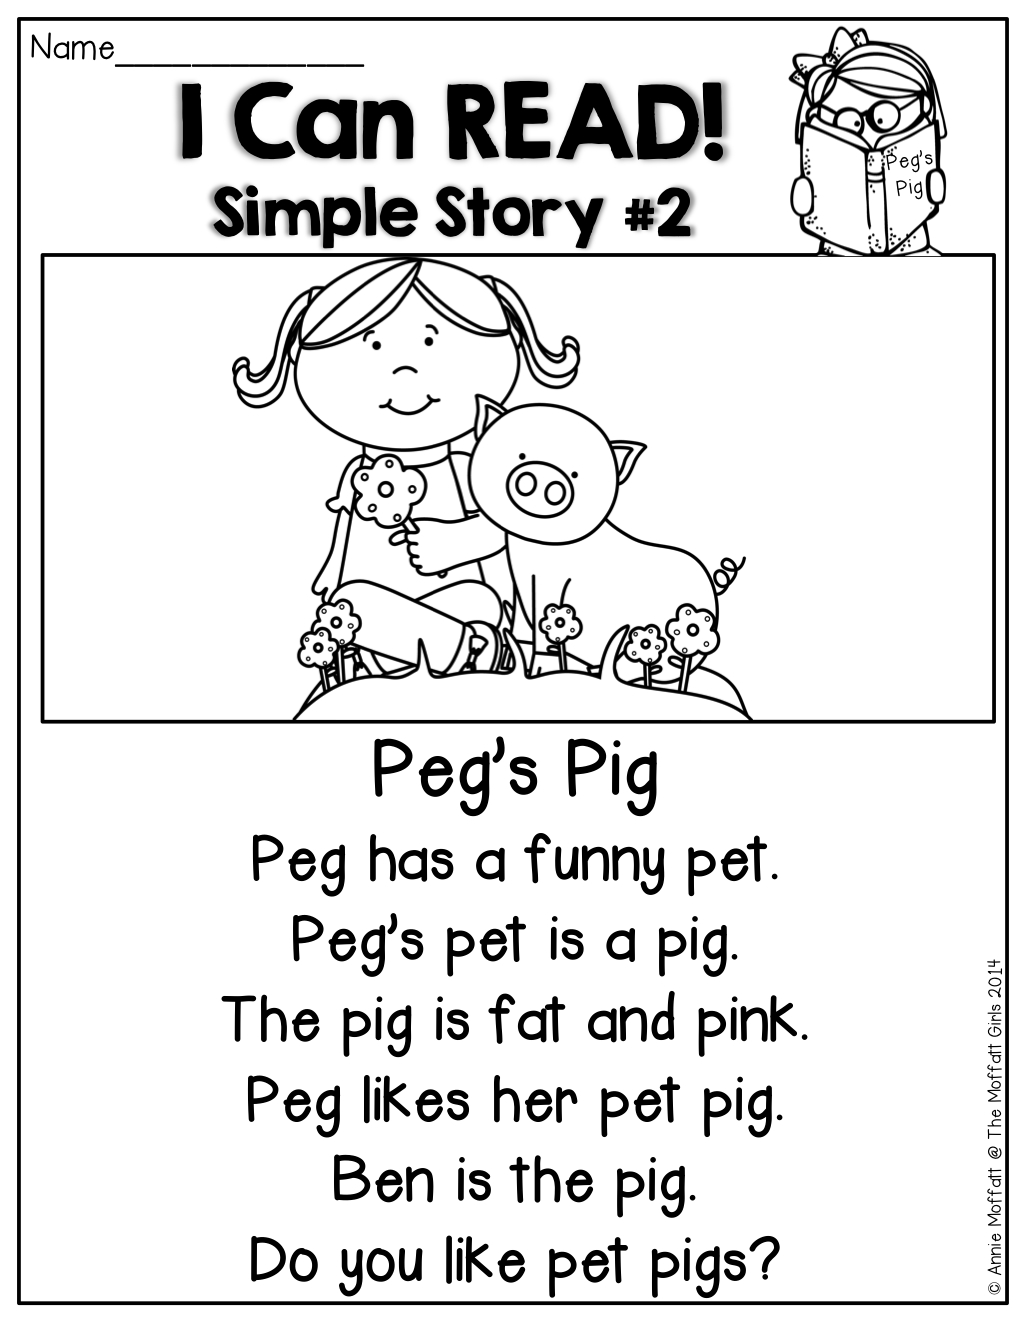 6 Pics Short Story For Kids To Read And Description